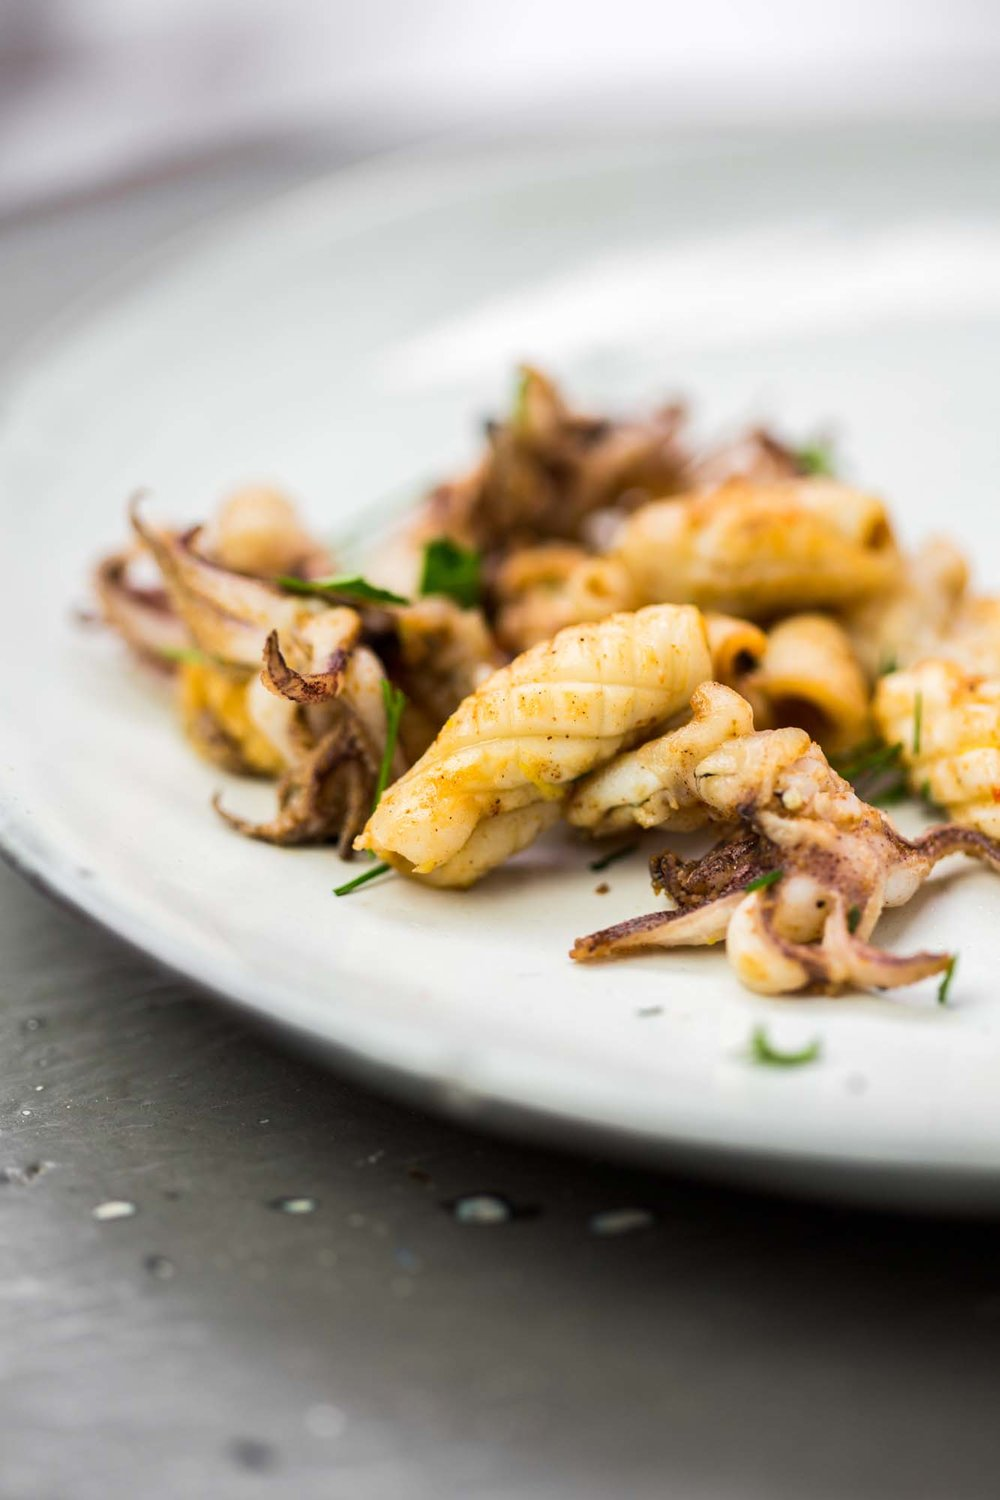 Ingredients - Baby squid, cleanedZest of a lemonChopped parsley½ tbsp of HarissaWe served the squid as a topping for Harrisa braised squid with saffron chickpeas, burnt lemon & garlic toastbut equally good served as a appetizers with some homemade aioli